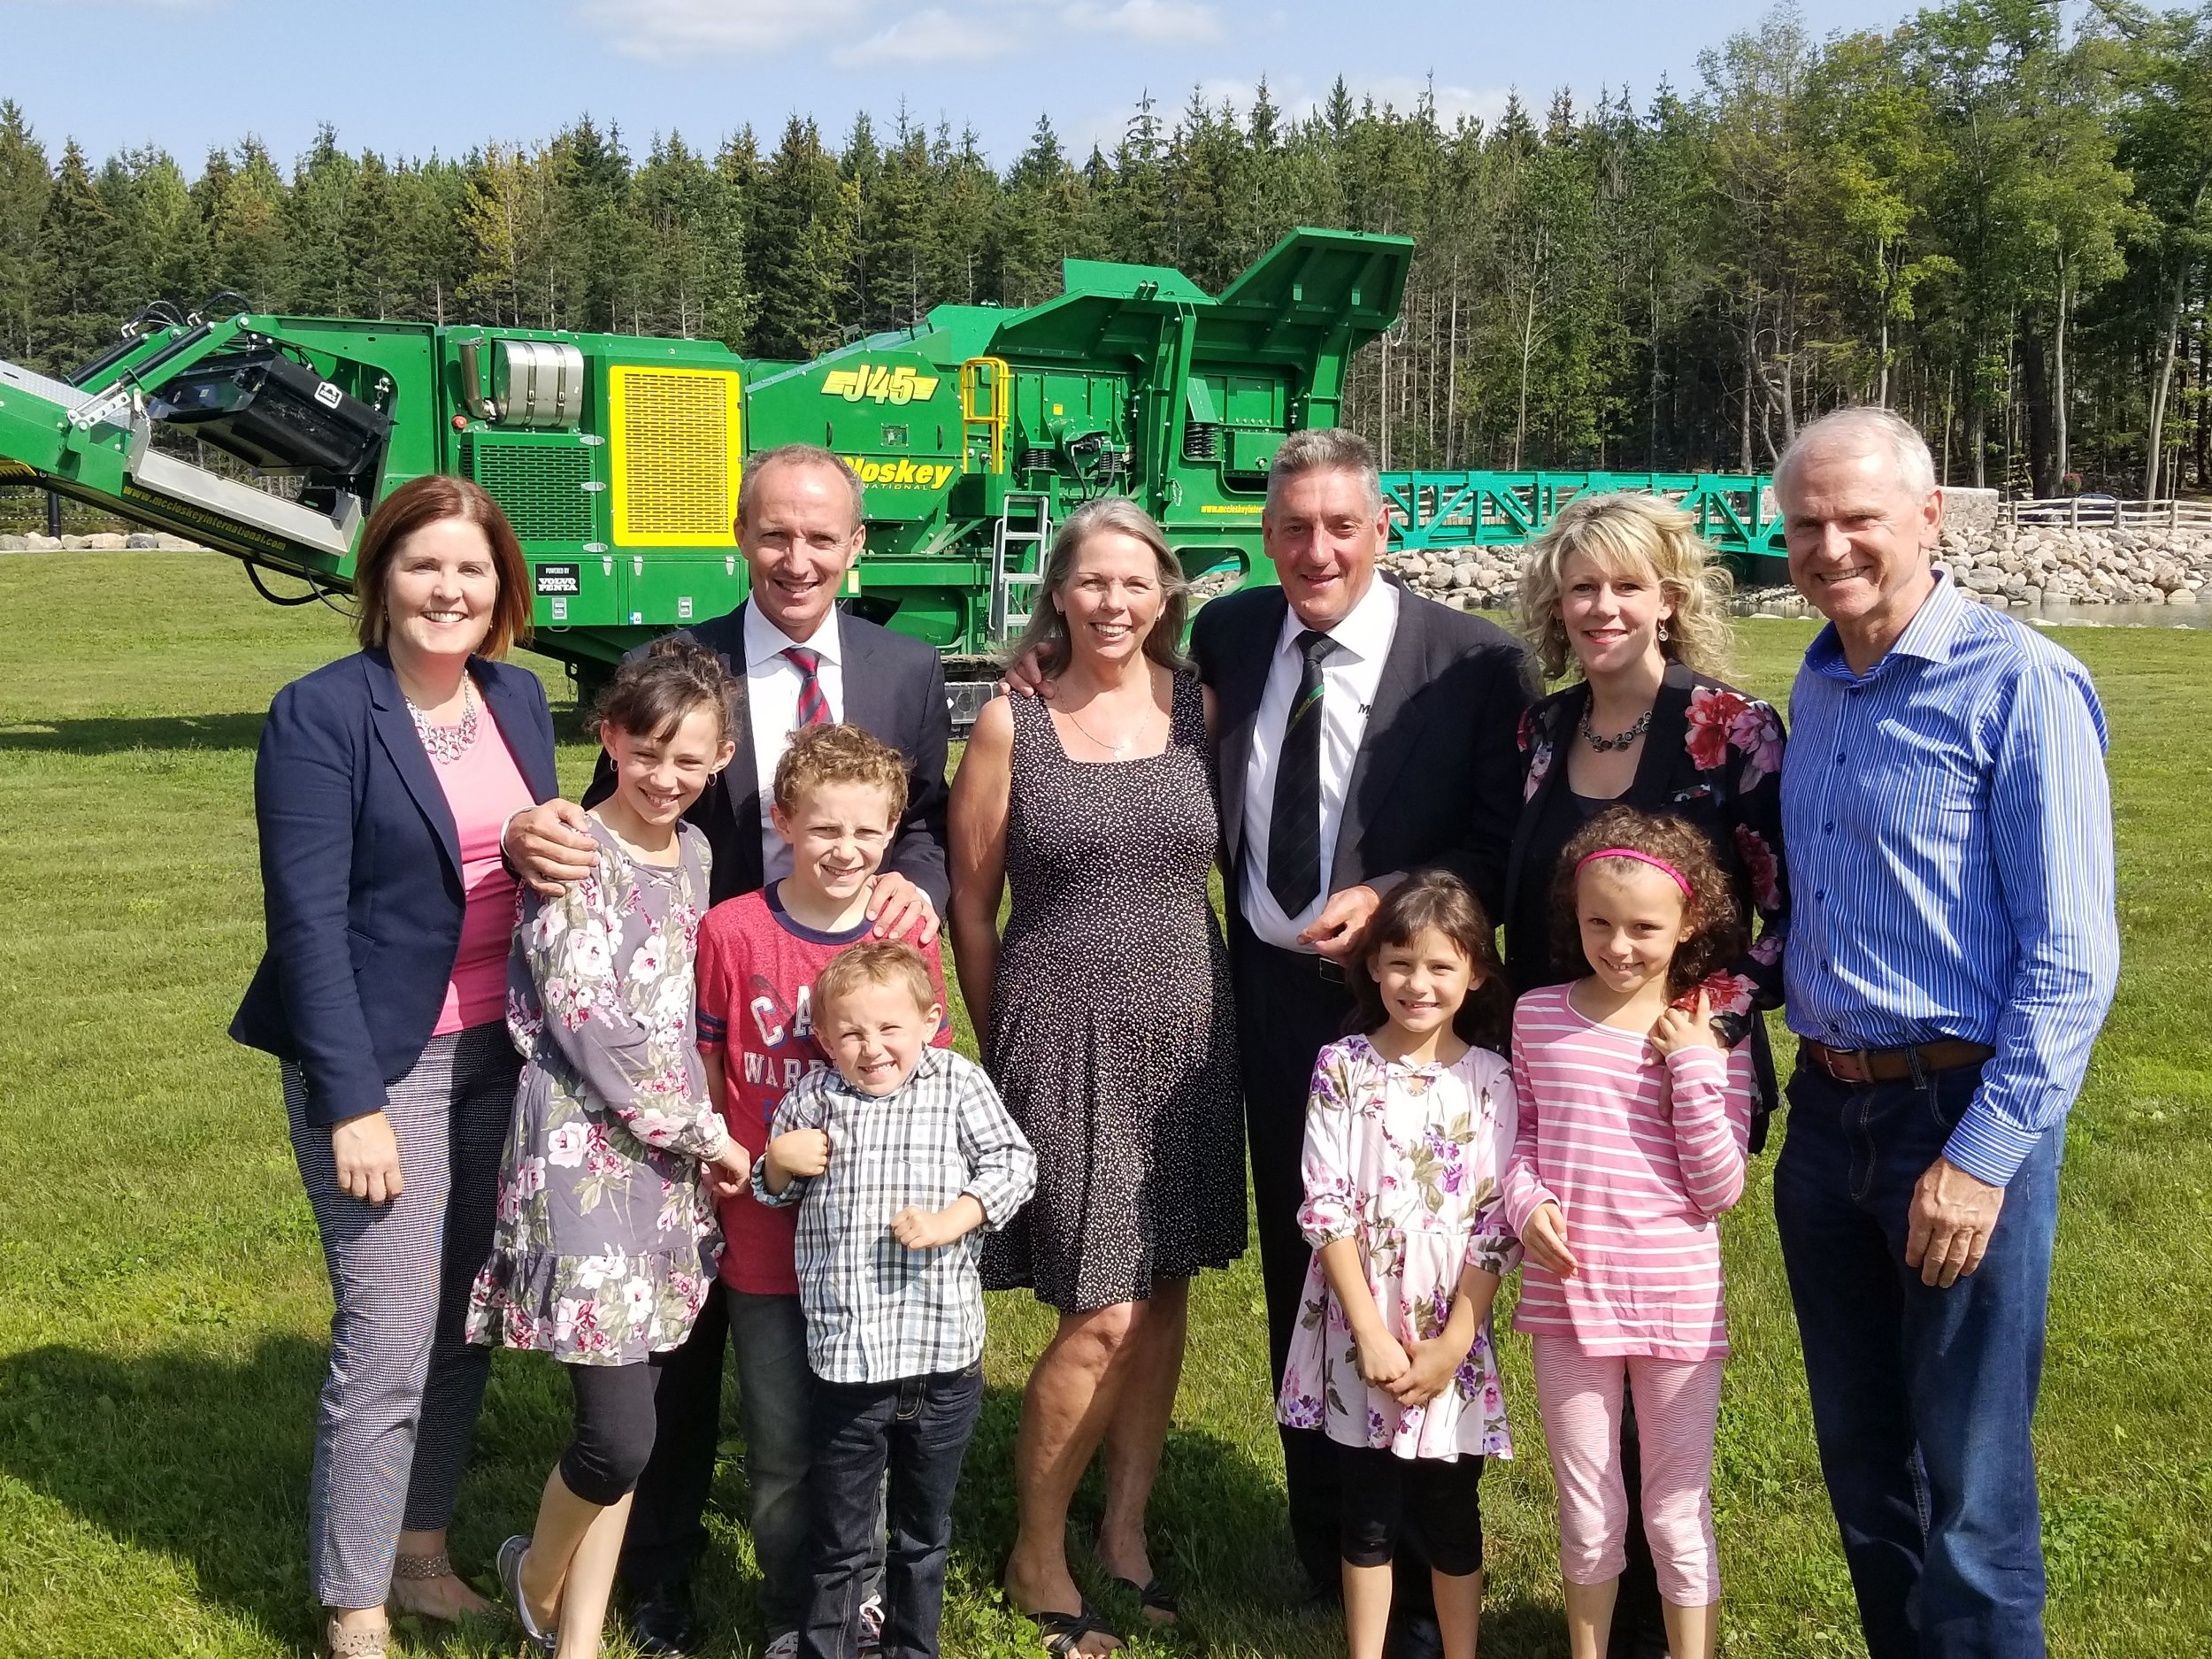 Left to right:  PRHC Foundation CEO Lesley Heighway, Donnell Leahy, Sylvia and Paschal McCloskey of McCloskey International, Natalie MacMaster and PRHC Foundation Governor Emeritus Terry Windrem join MacMaster and Leahy's children at the site of this weekend's Greenbridge Celtic Festival for a photo in celebration of the McCloskey's $1 million pledge to the PRHC Foundation.